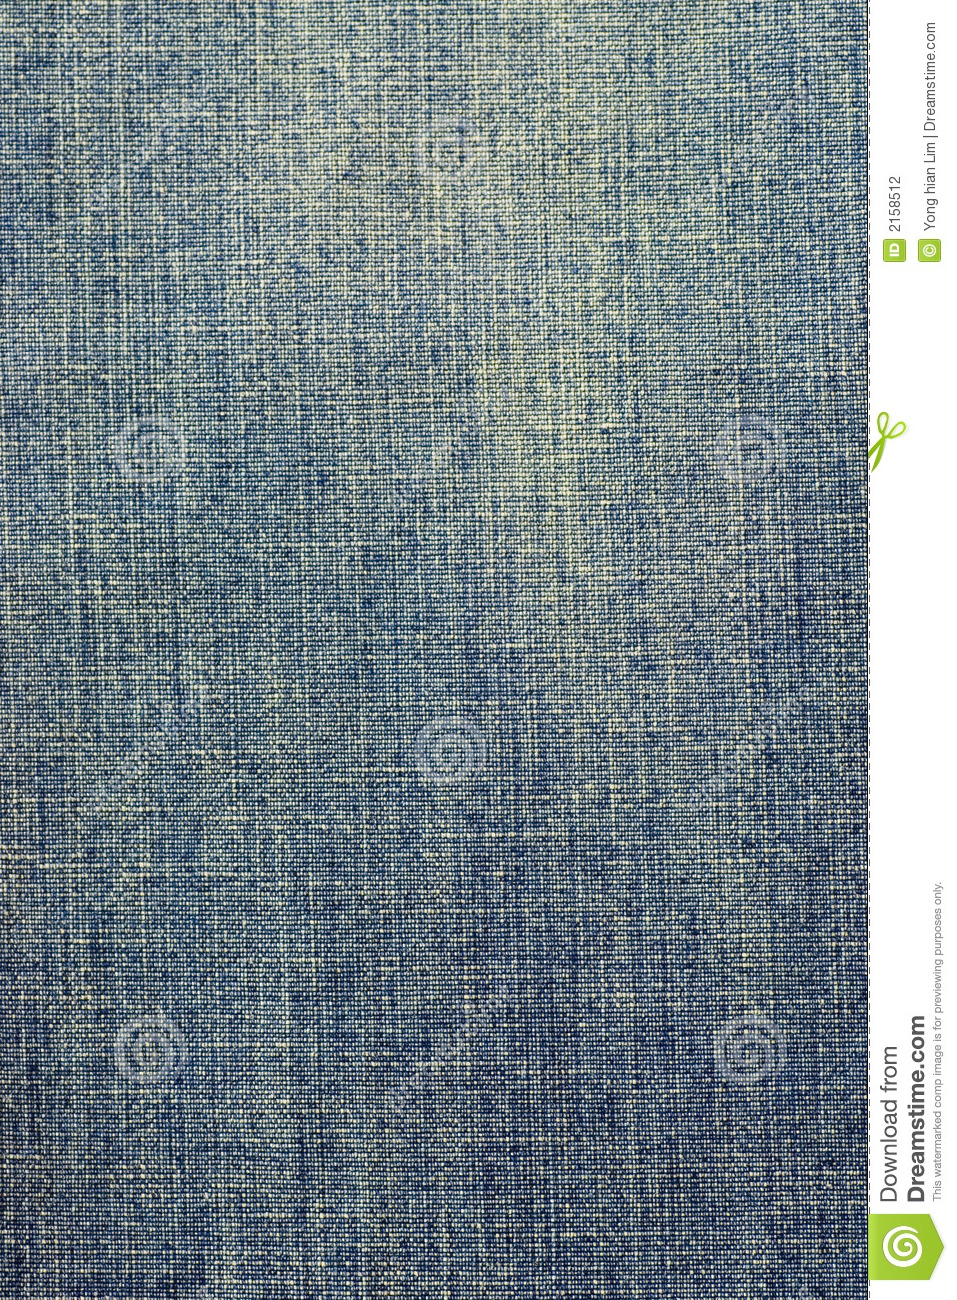 Faded denim fabric texture